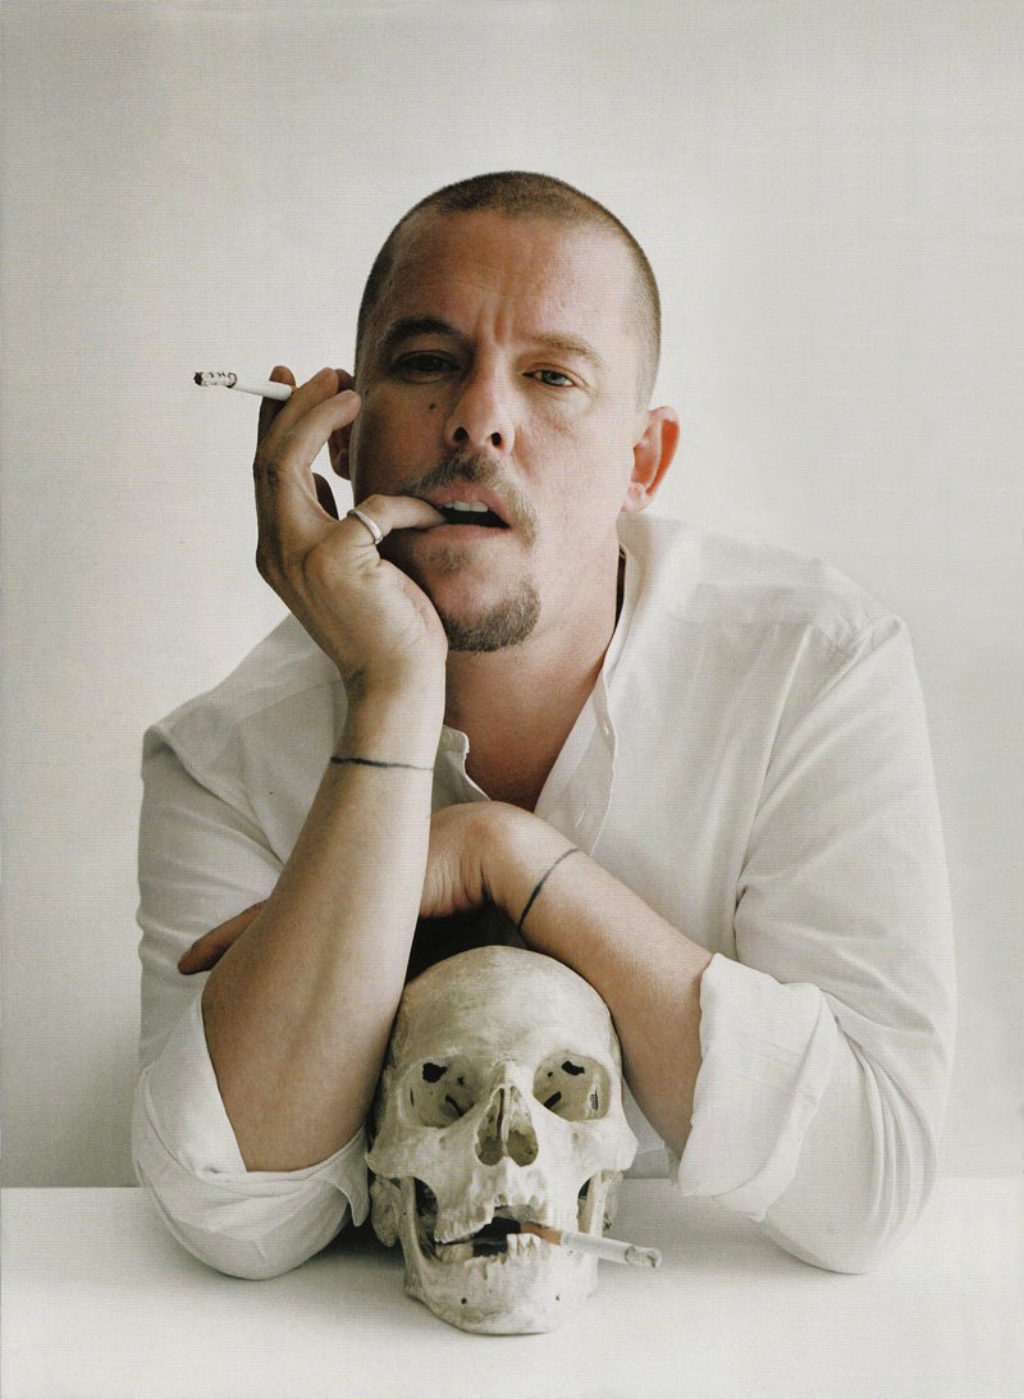 mcqueen and skull